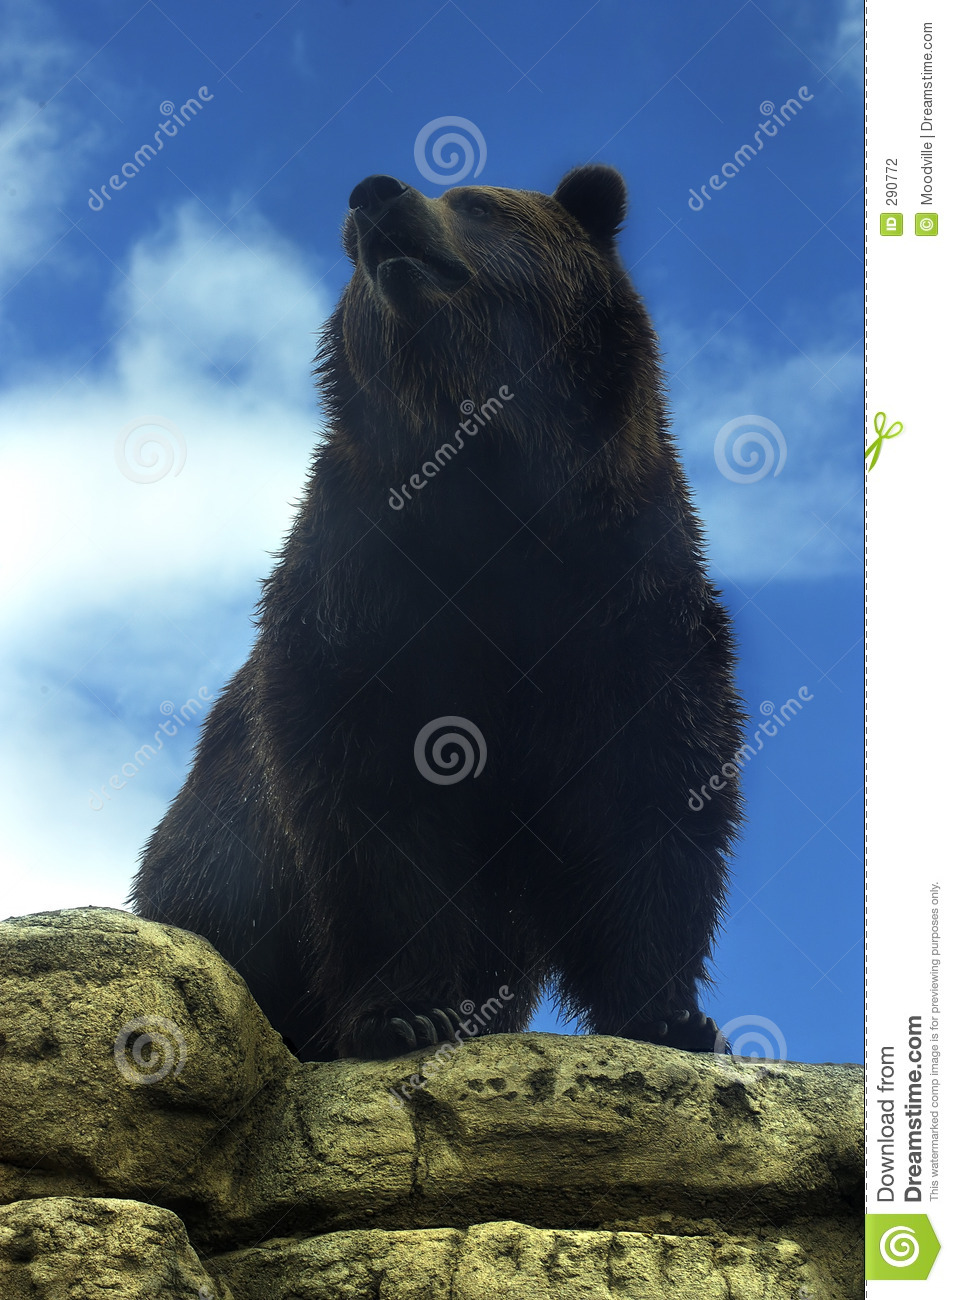 Björngrizzly